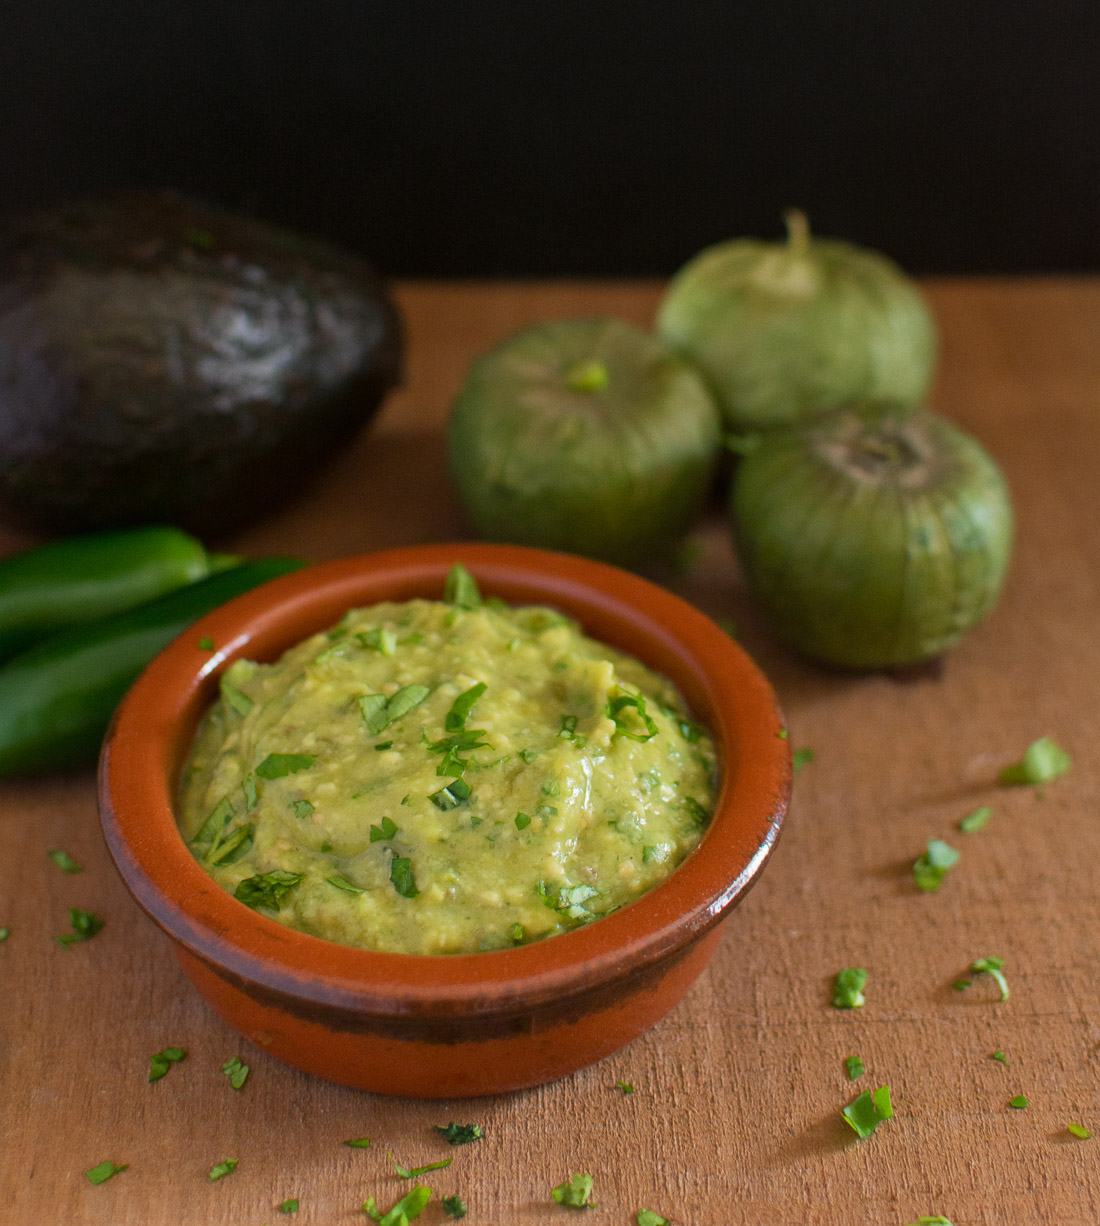 The tang of tomatillos and creaminess of avocados come together beautifully in this salsa.